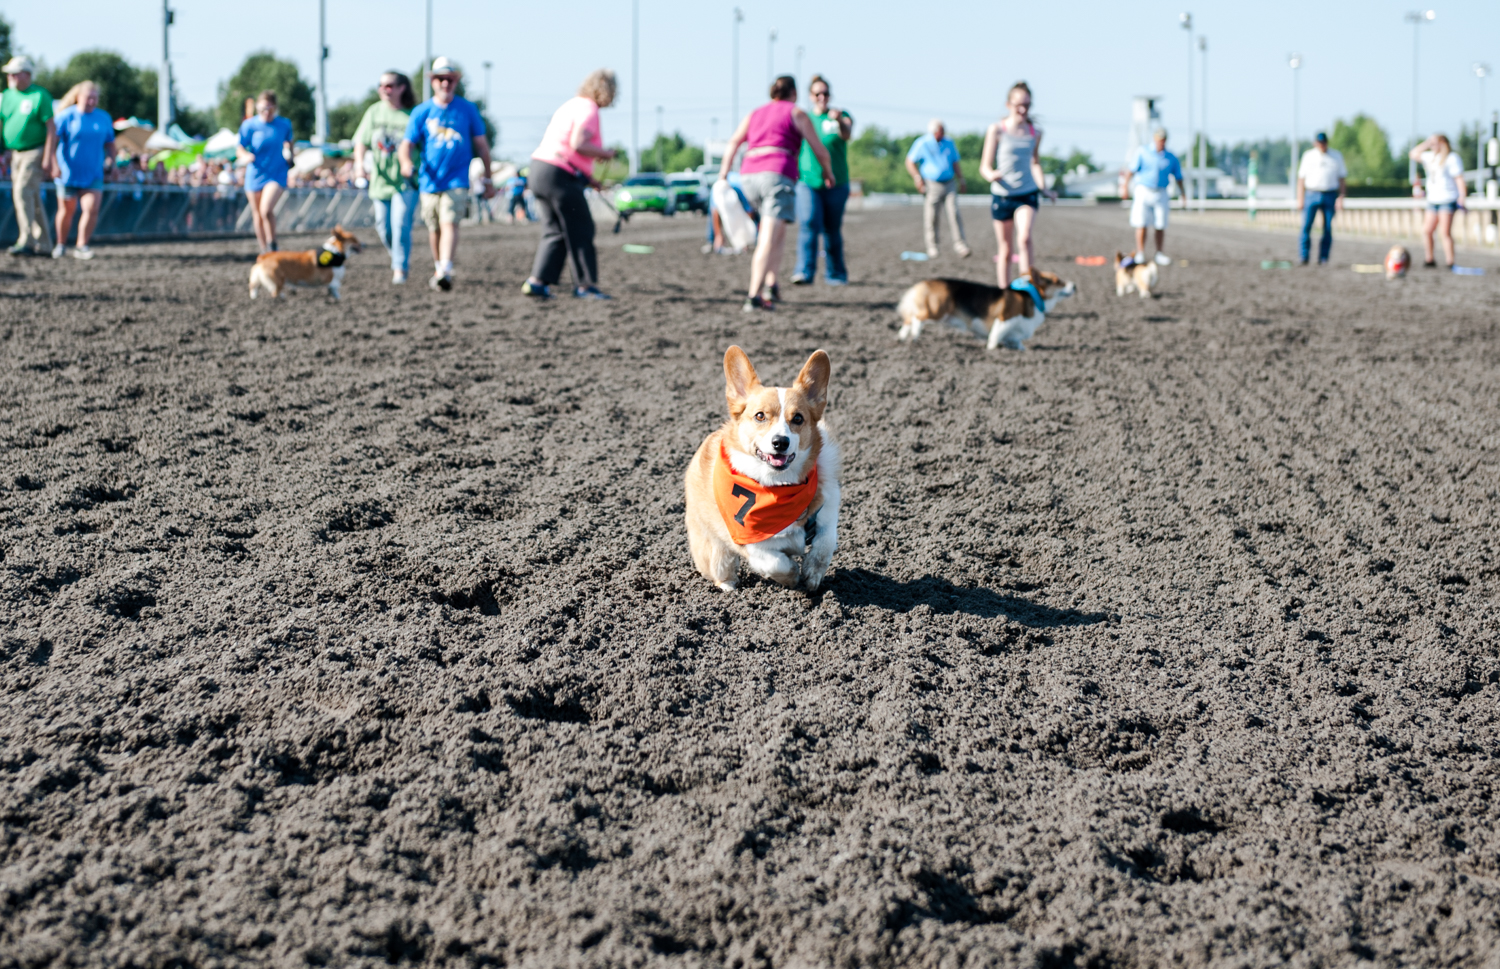 For the second year in a row, corgis took to the tracks at Emerald Downs to compete in the annual Corgi Races! On a track built for horses, watching these little dogs and their tiny legs racing is one of the more hilarious and amazing things we see all year. (Image: Elizabeth Crook / Seattle Refined){ }